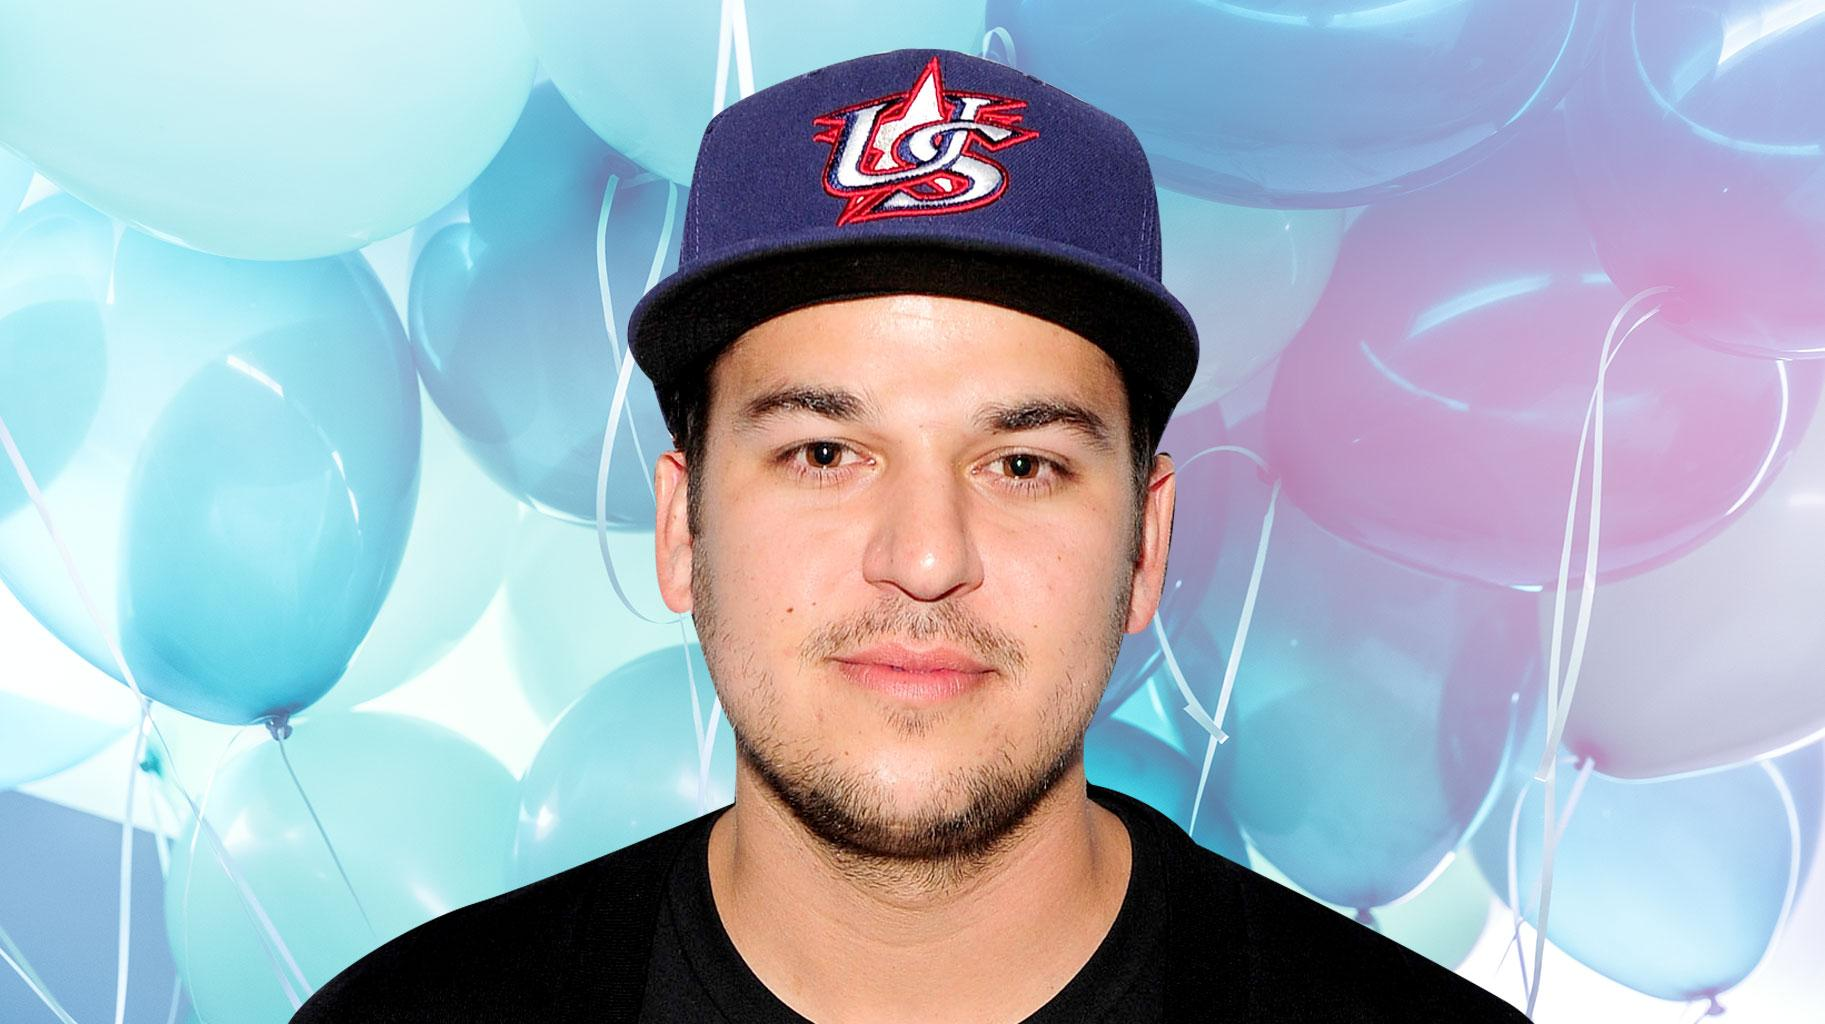 KUWTK: Rob Kardashian - Inside His Goals For The New Year!